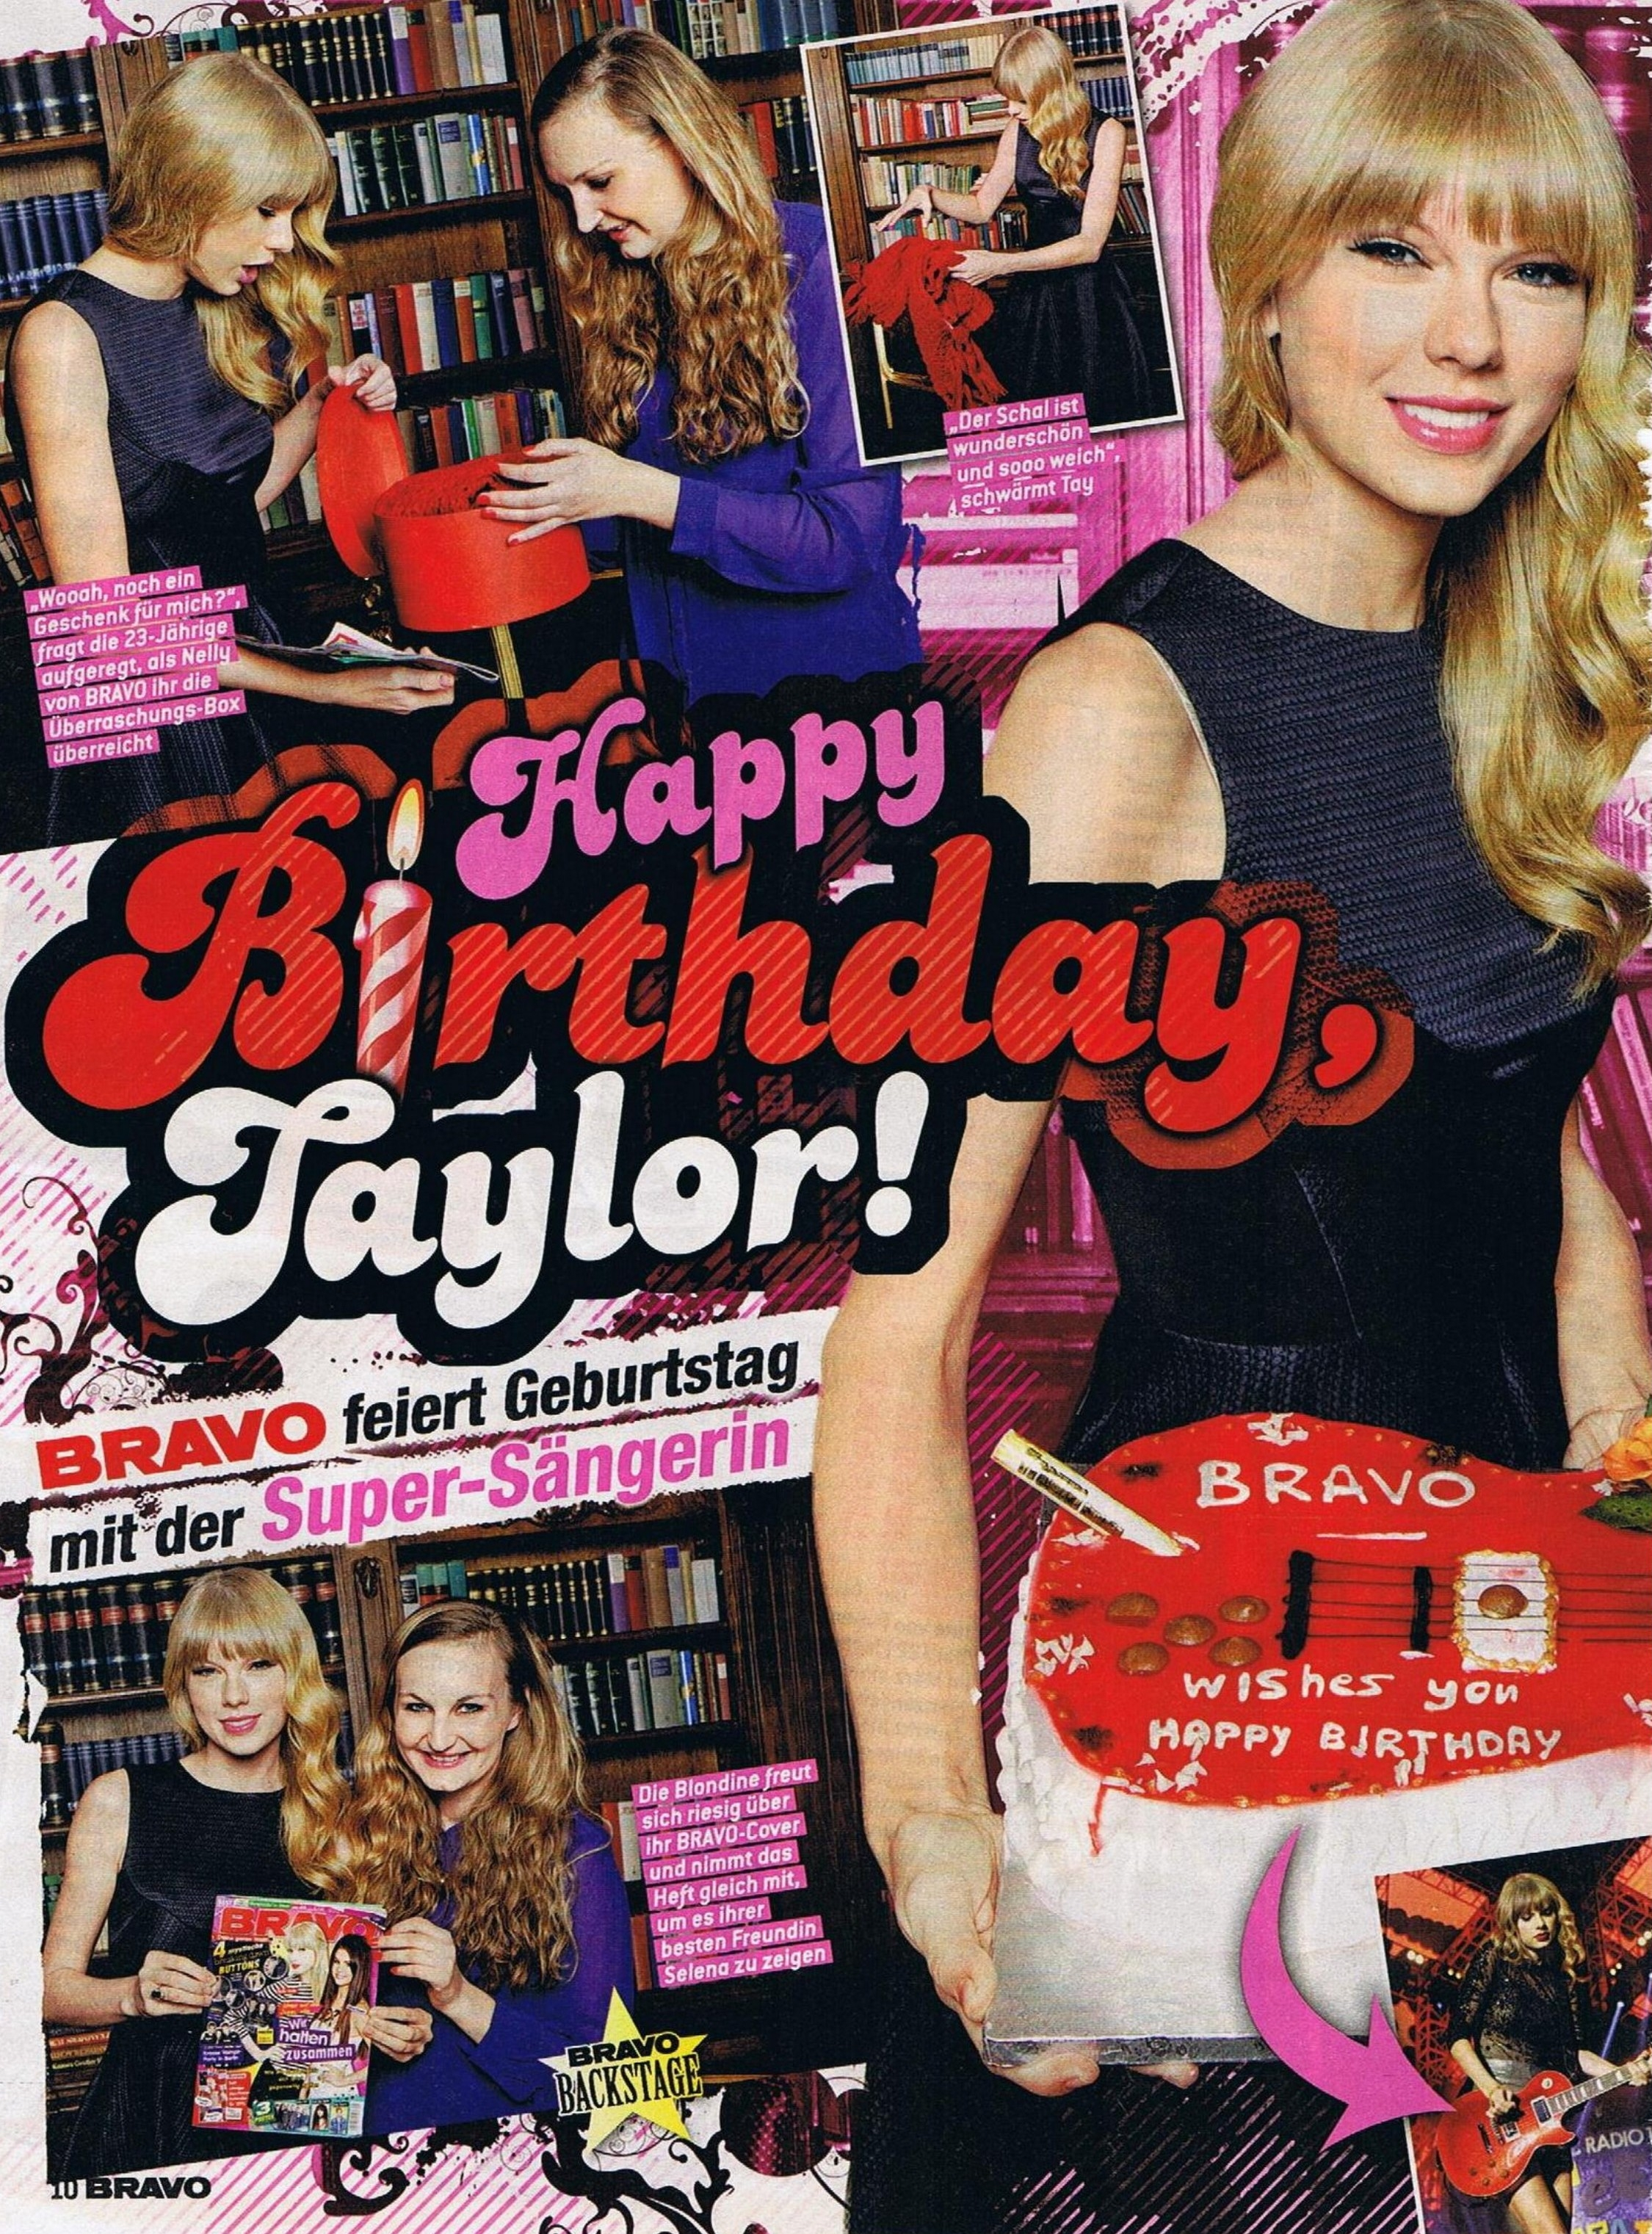 http://www.taylorpictures.net/albums/scans/2012/bravogermany/001.jpg